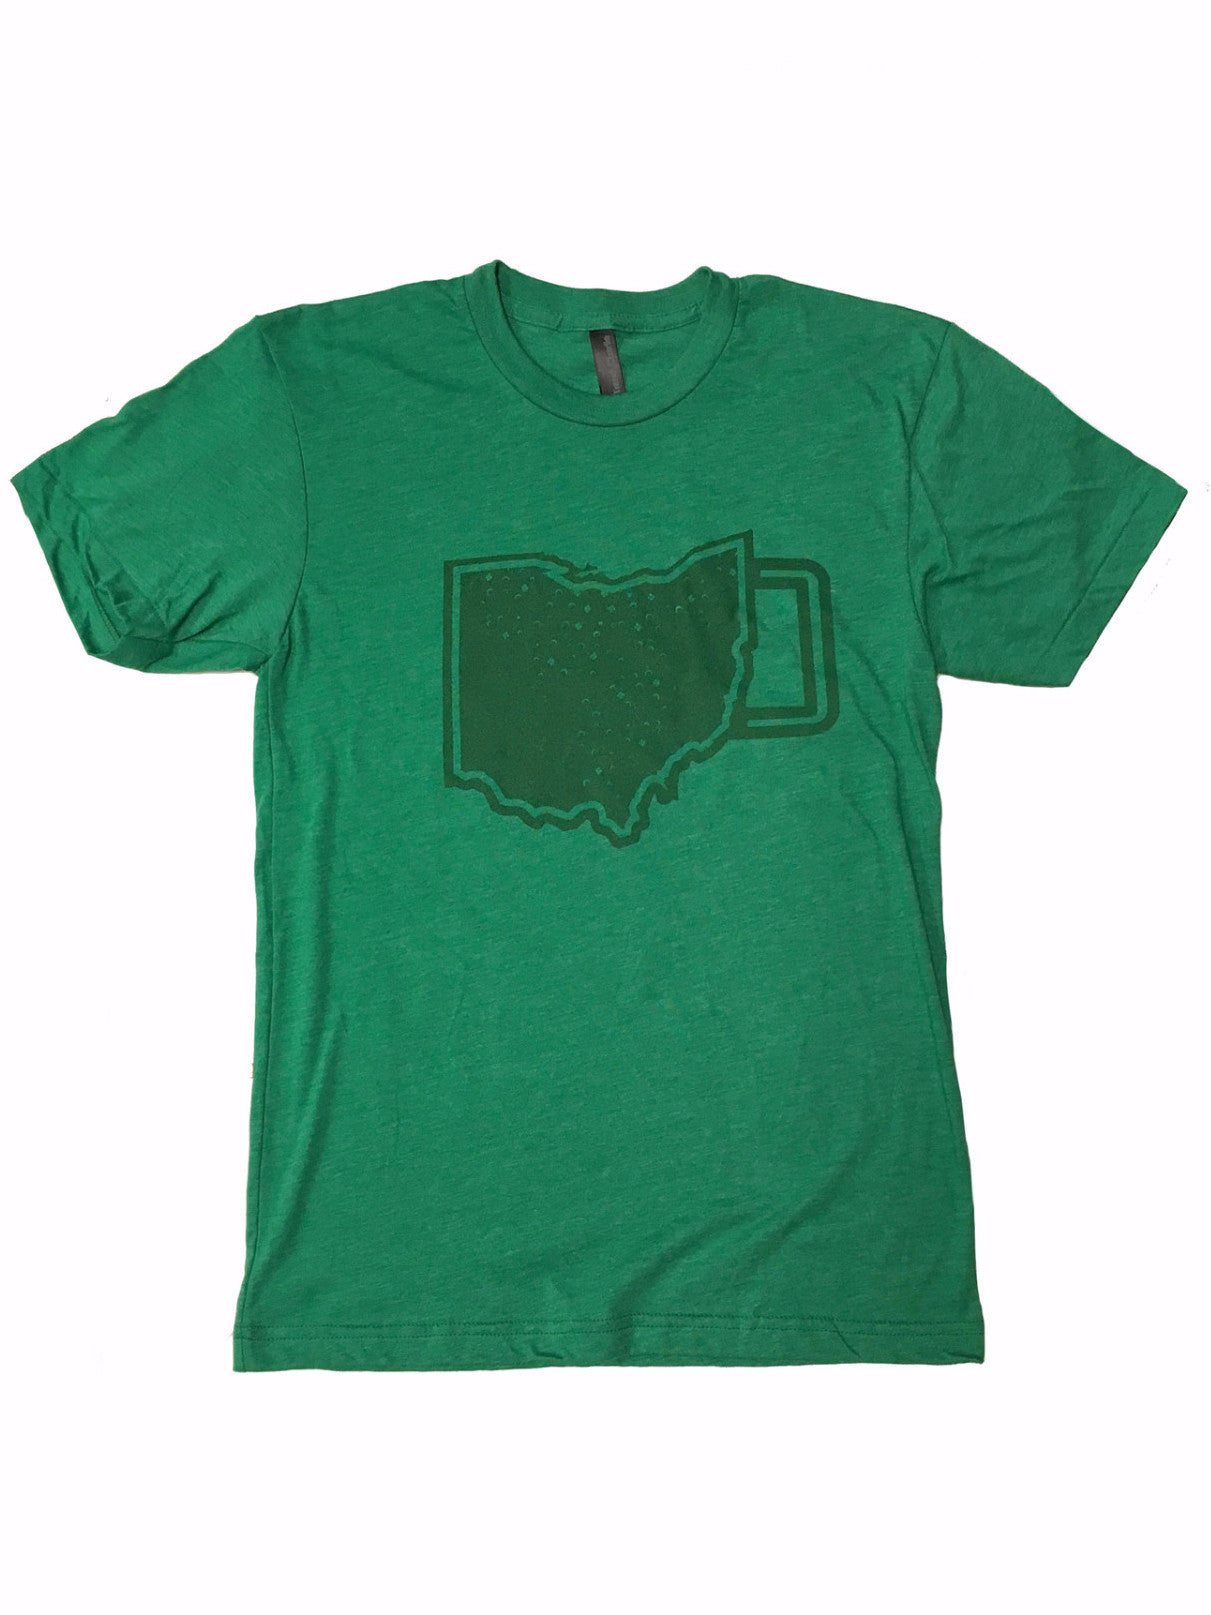 Ohio St. Patricks Day Shirt